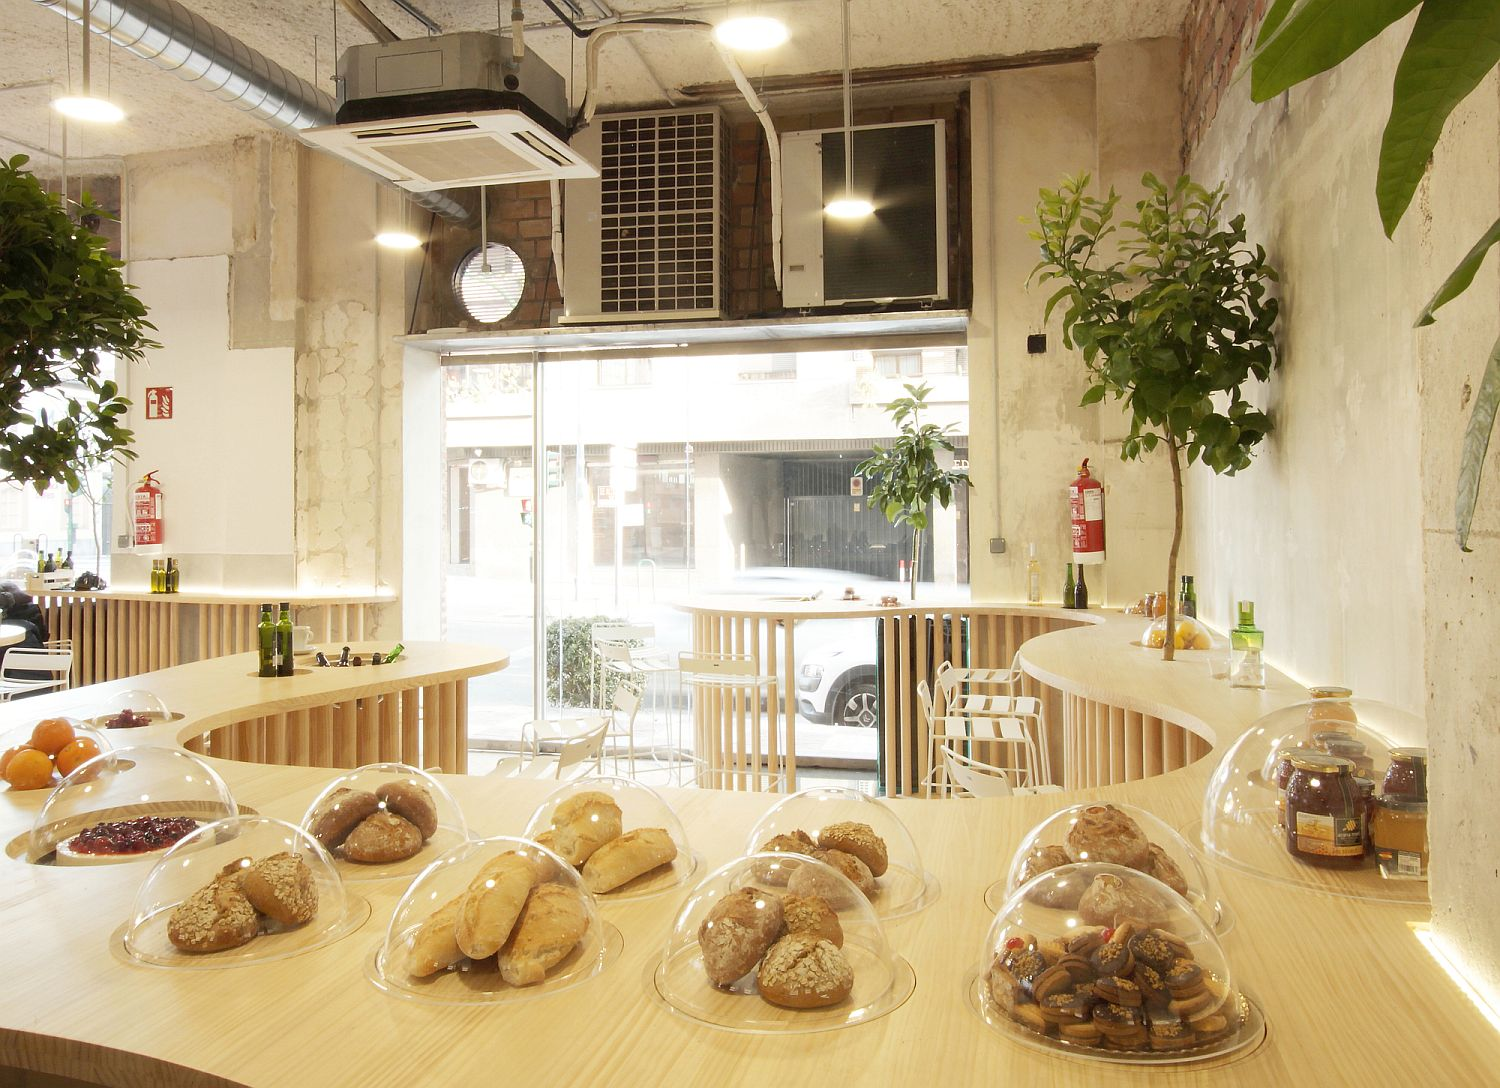 Design of the restaurant makes most of the limited space on offer inside the revamped structure